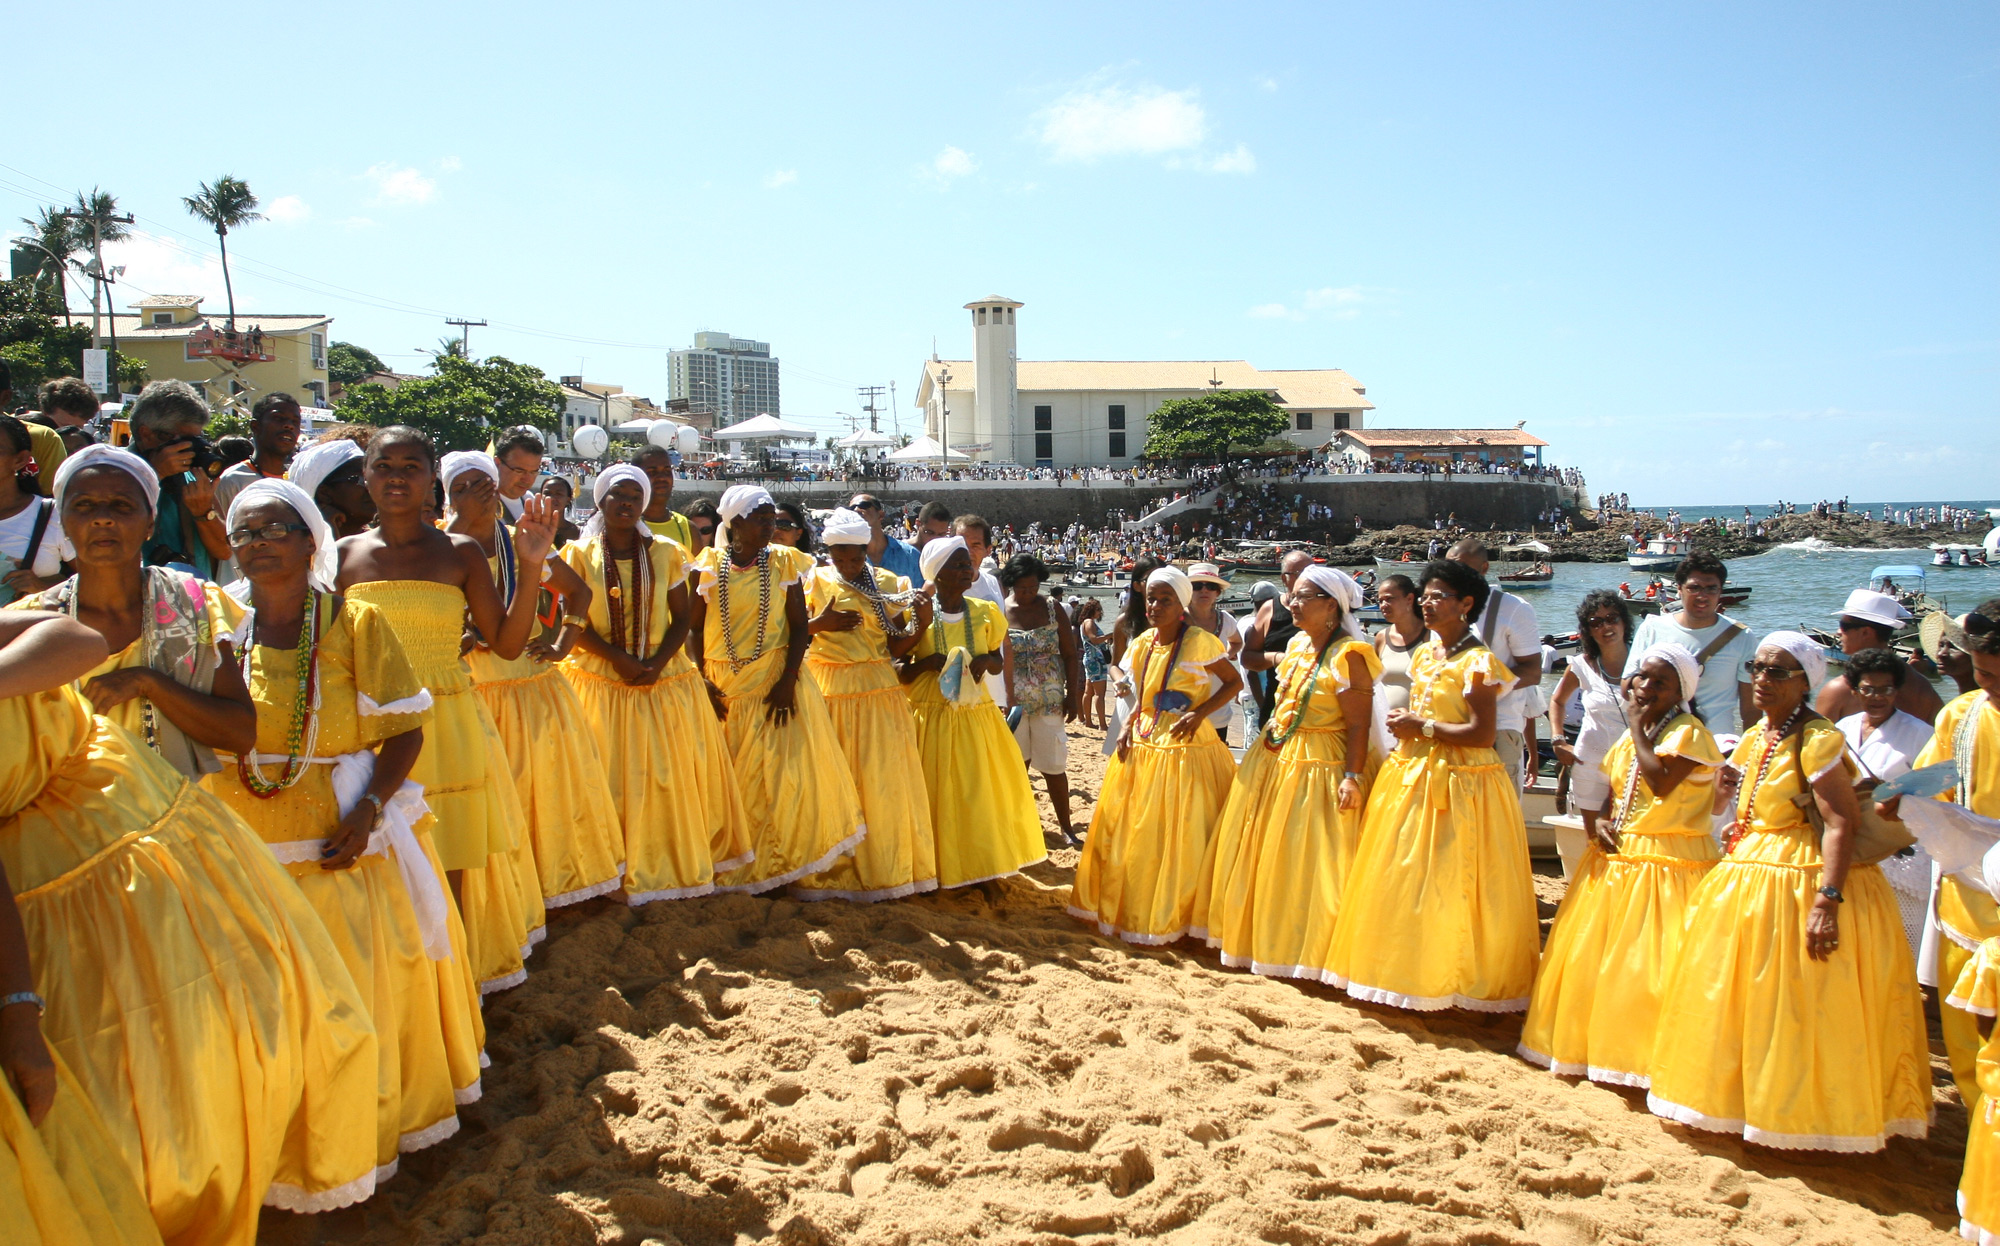 A celebration of Orixá Iemanja in Brazil at the sea shore in 2010. Image by  Fotos GOVBA  CC BY 2.0